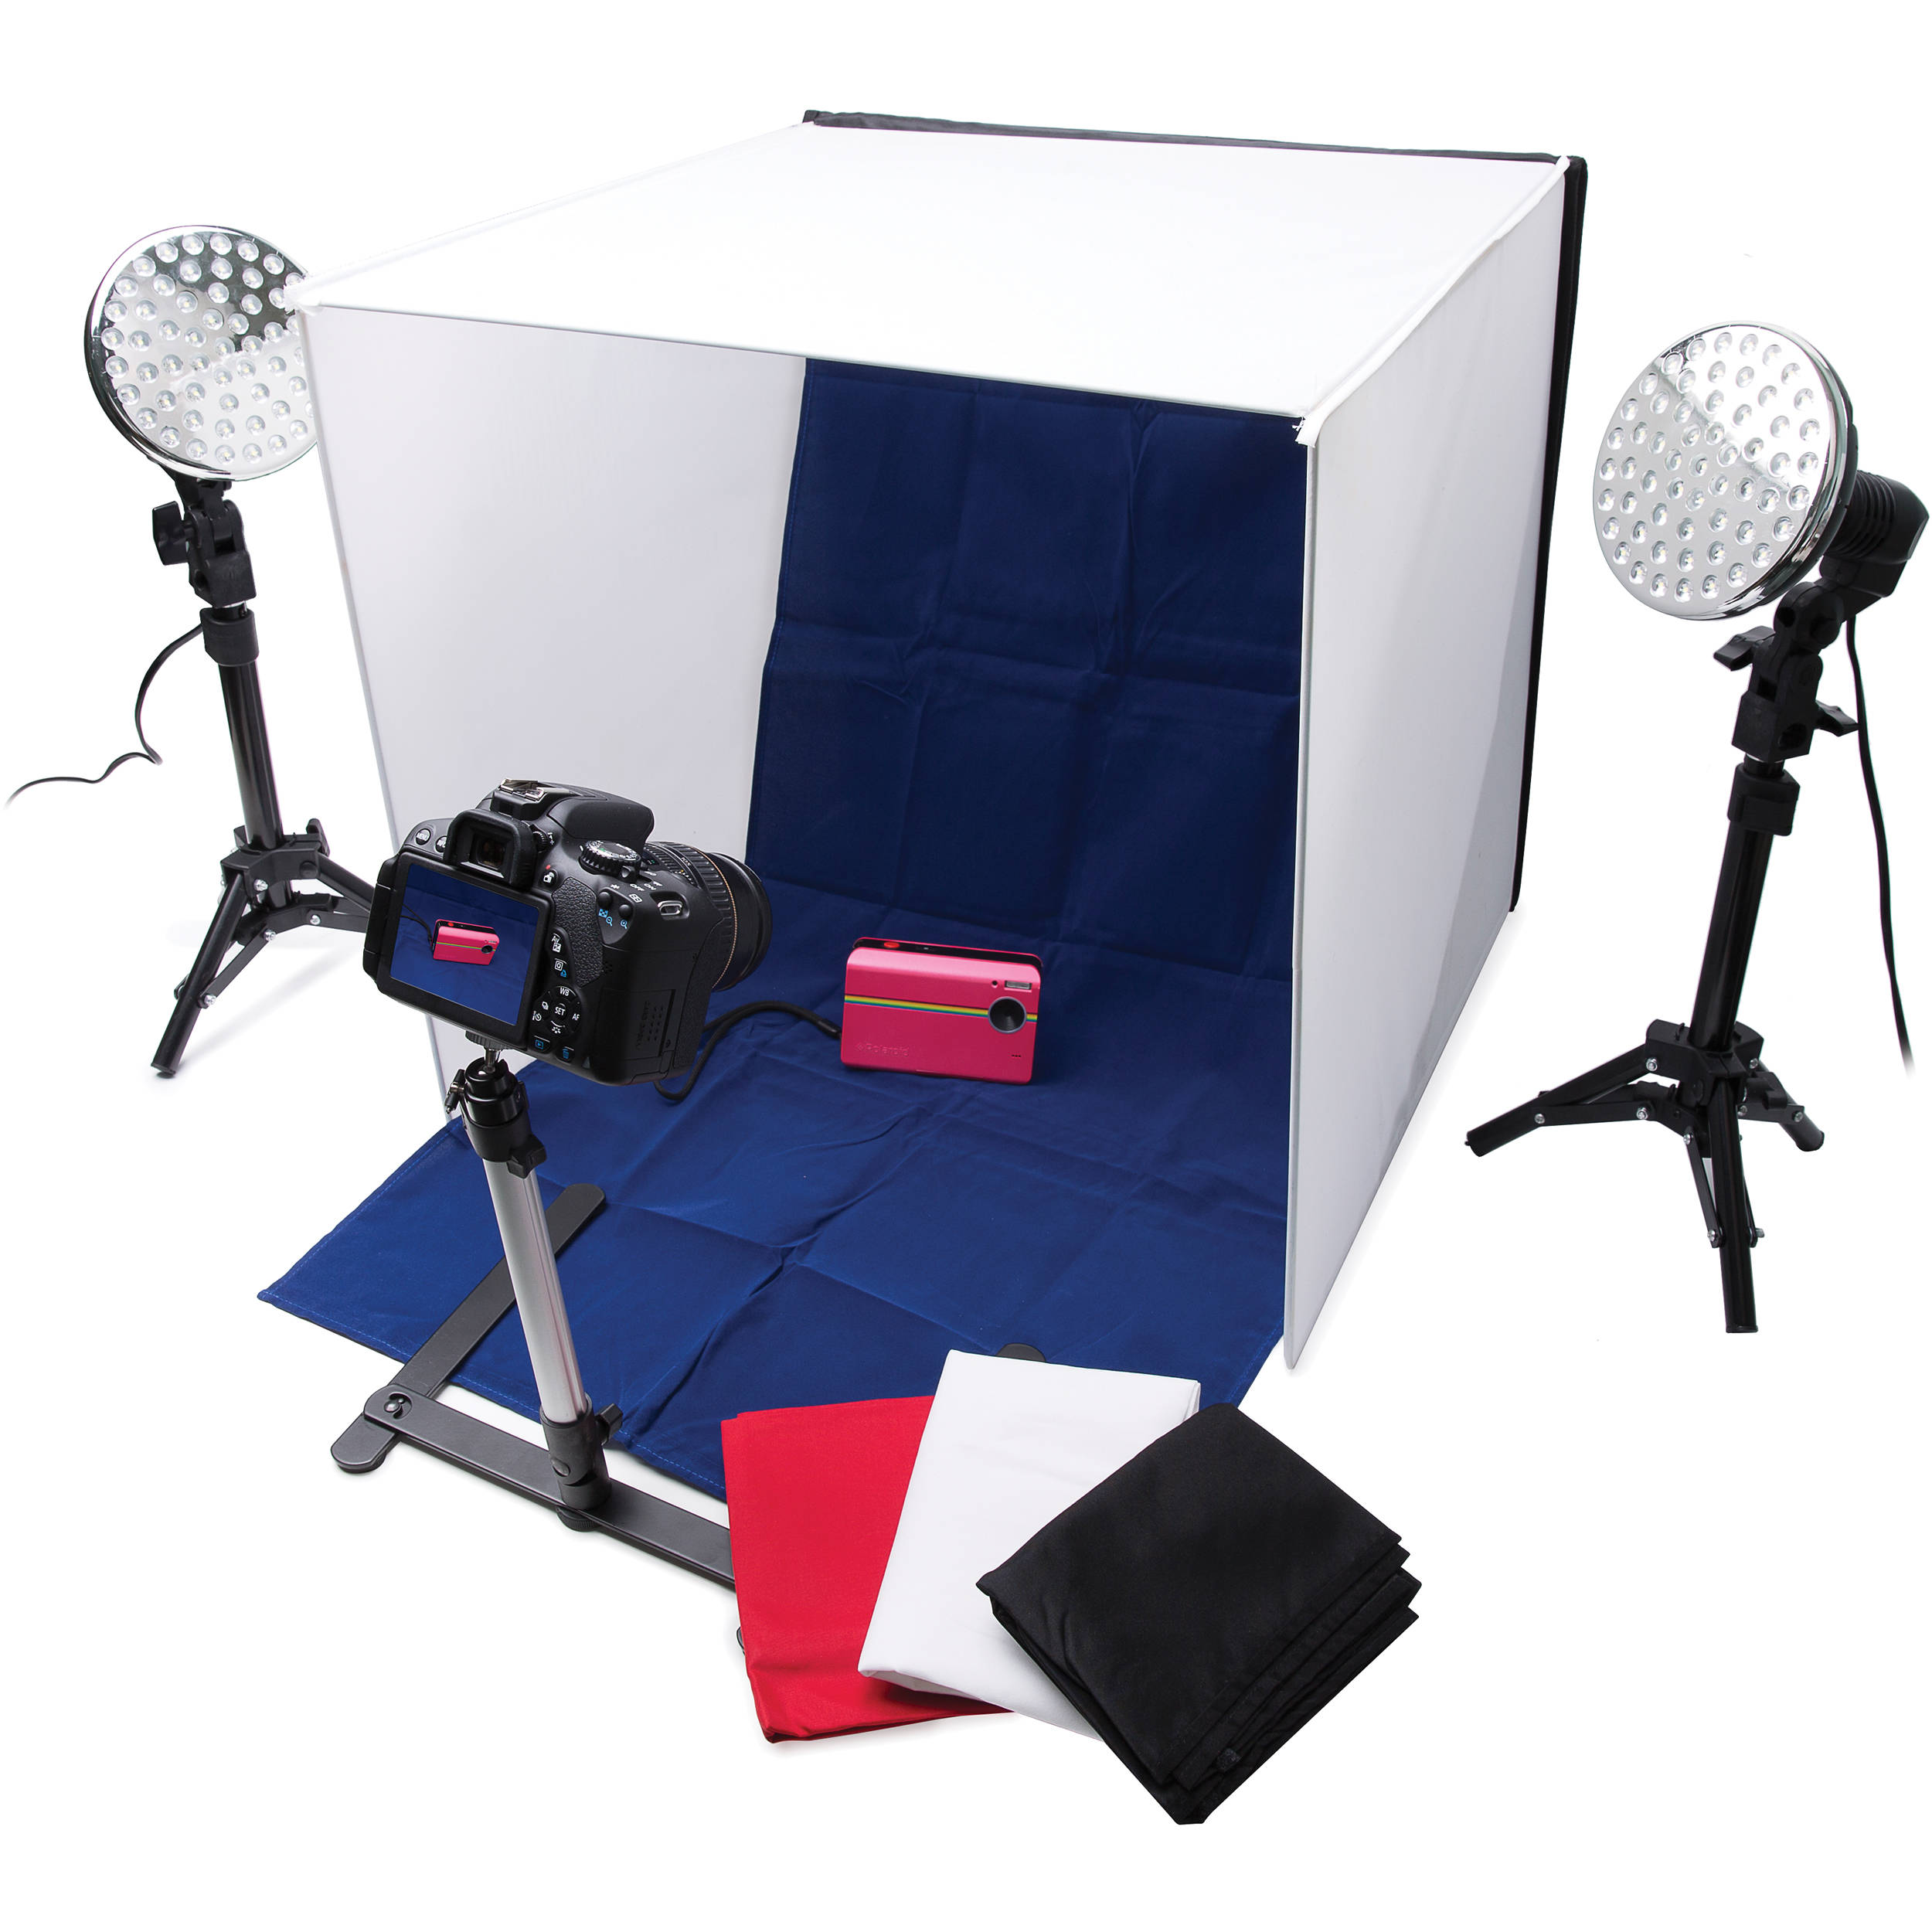 polaroid pro table top photo studio kit plpsled b h photo. Black Bedroom Furniture Sets. Home Design Ideas